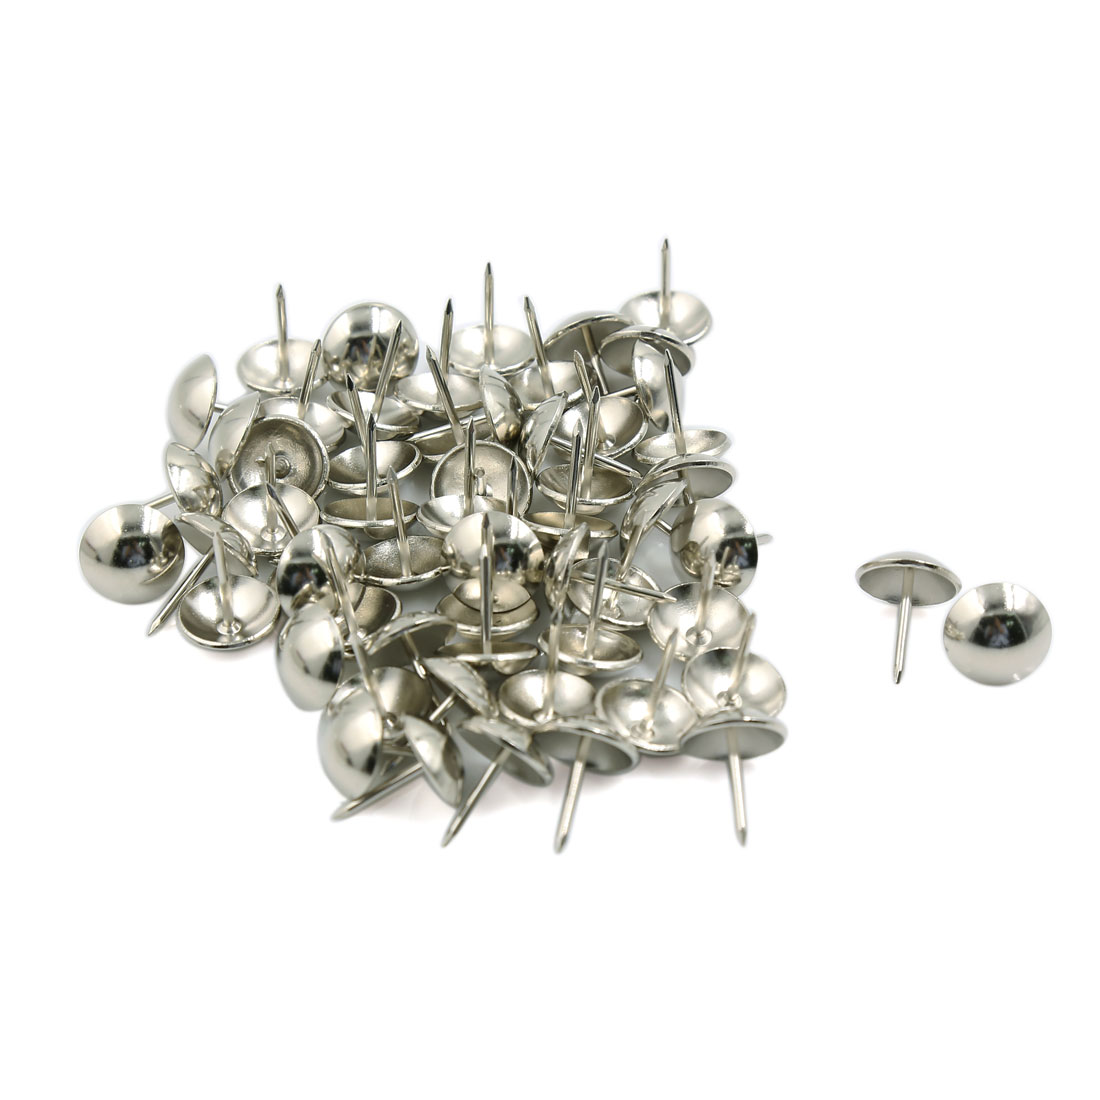 Message Notice Board Corkboard Photo Steel Round Top Thumbtack Sliver Tone 50pcs